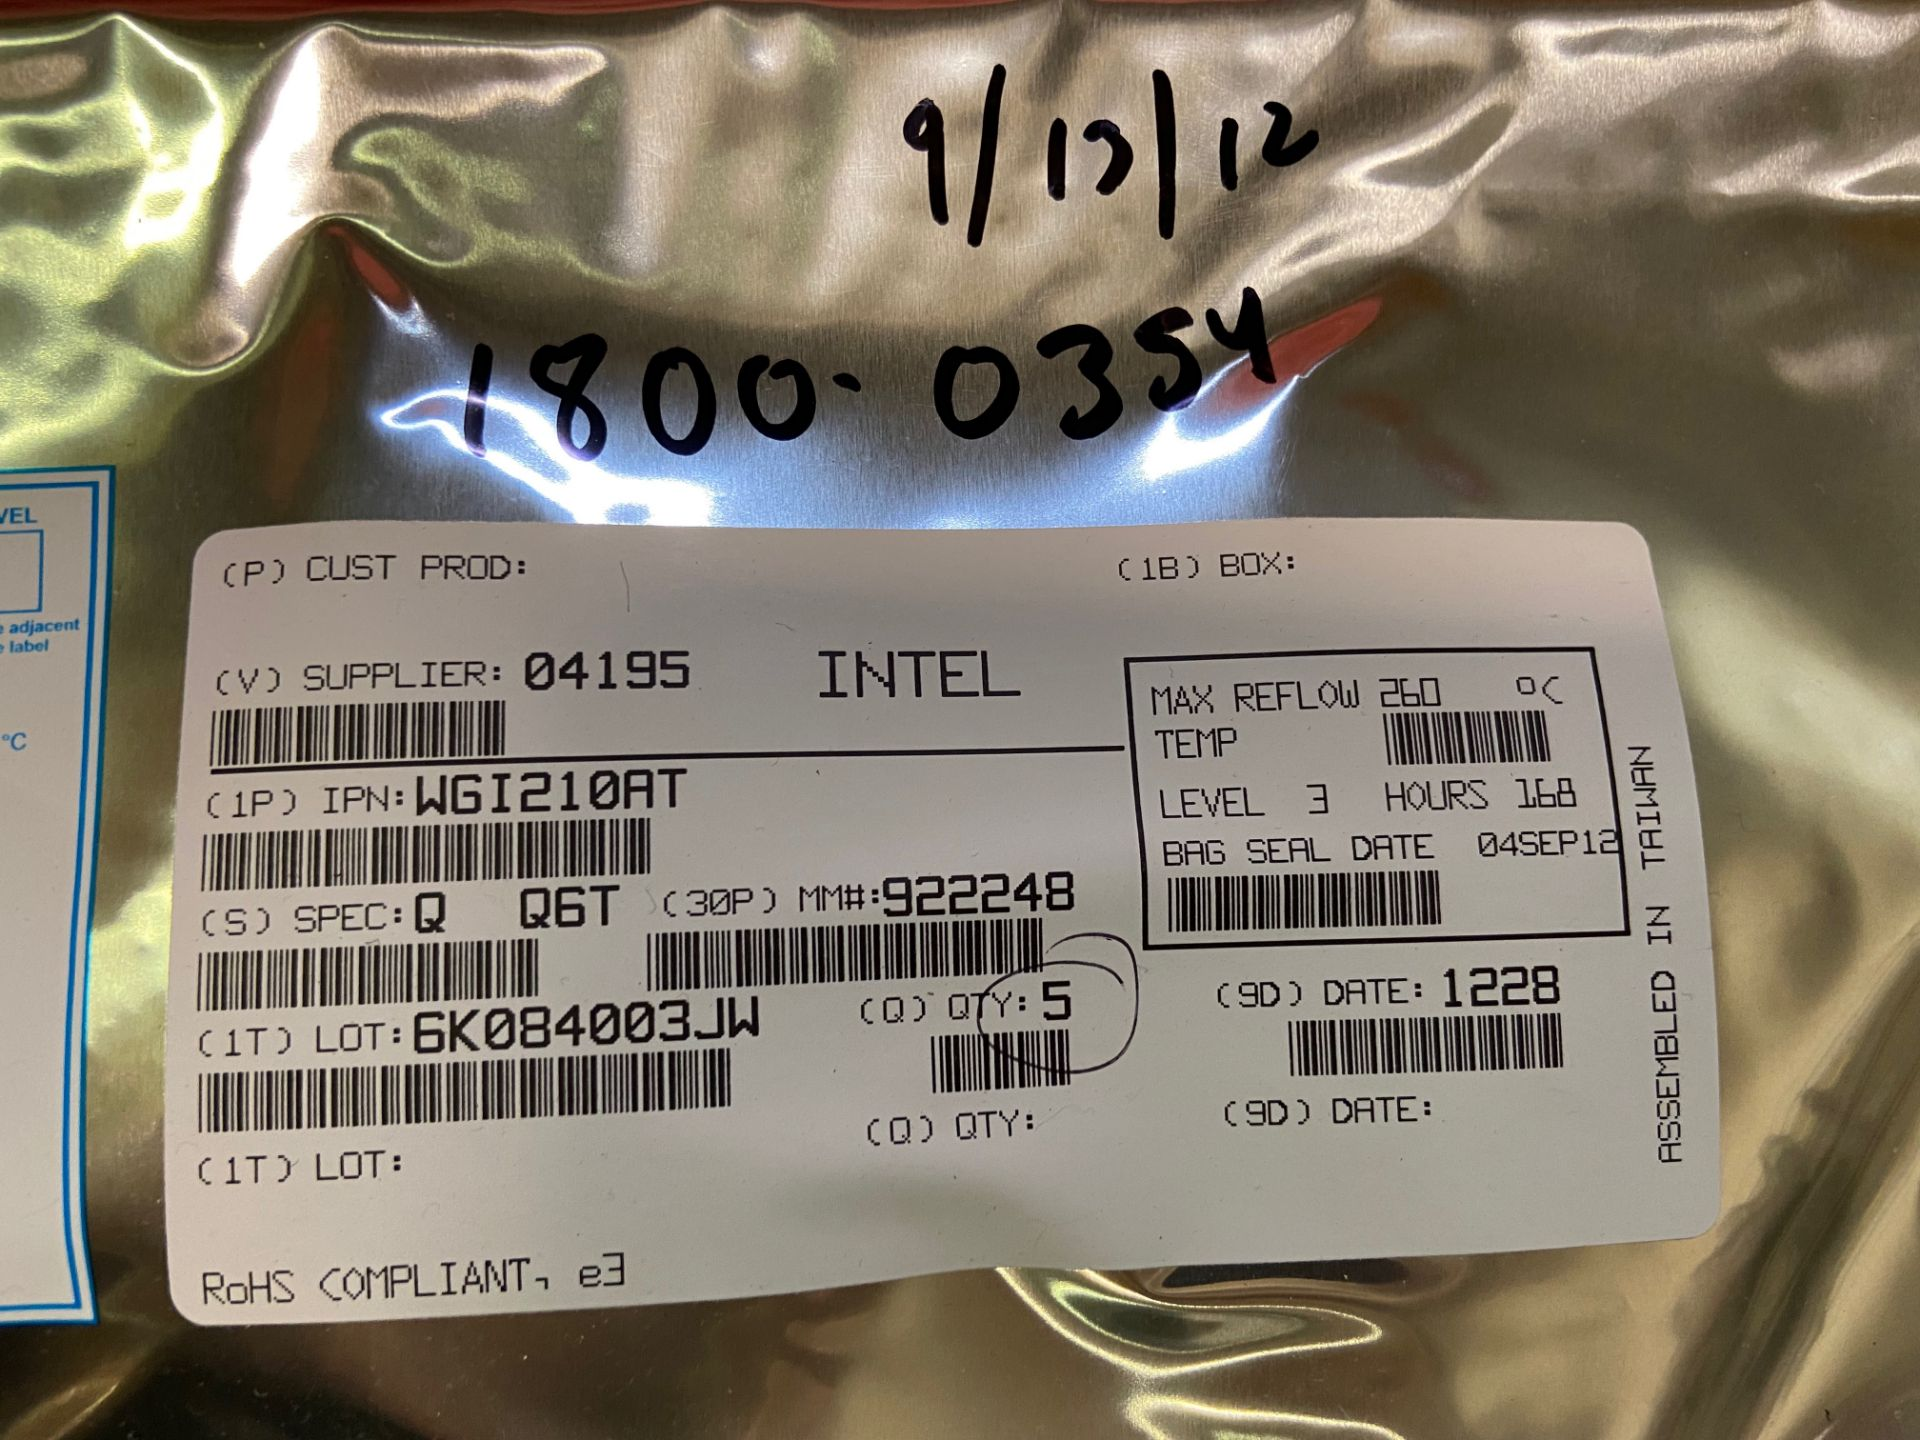 Intel WGI210AT Ethernet Controllers, QTY 5 - Image 2 of 3